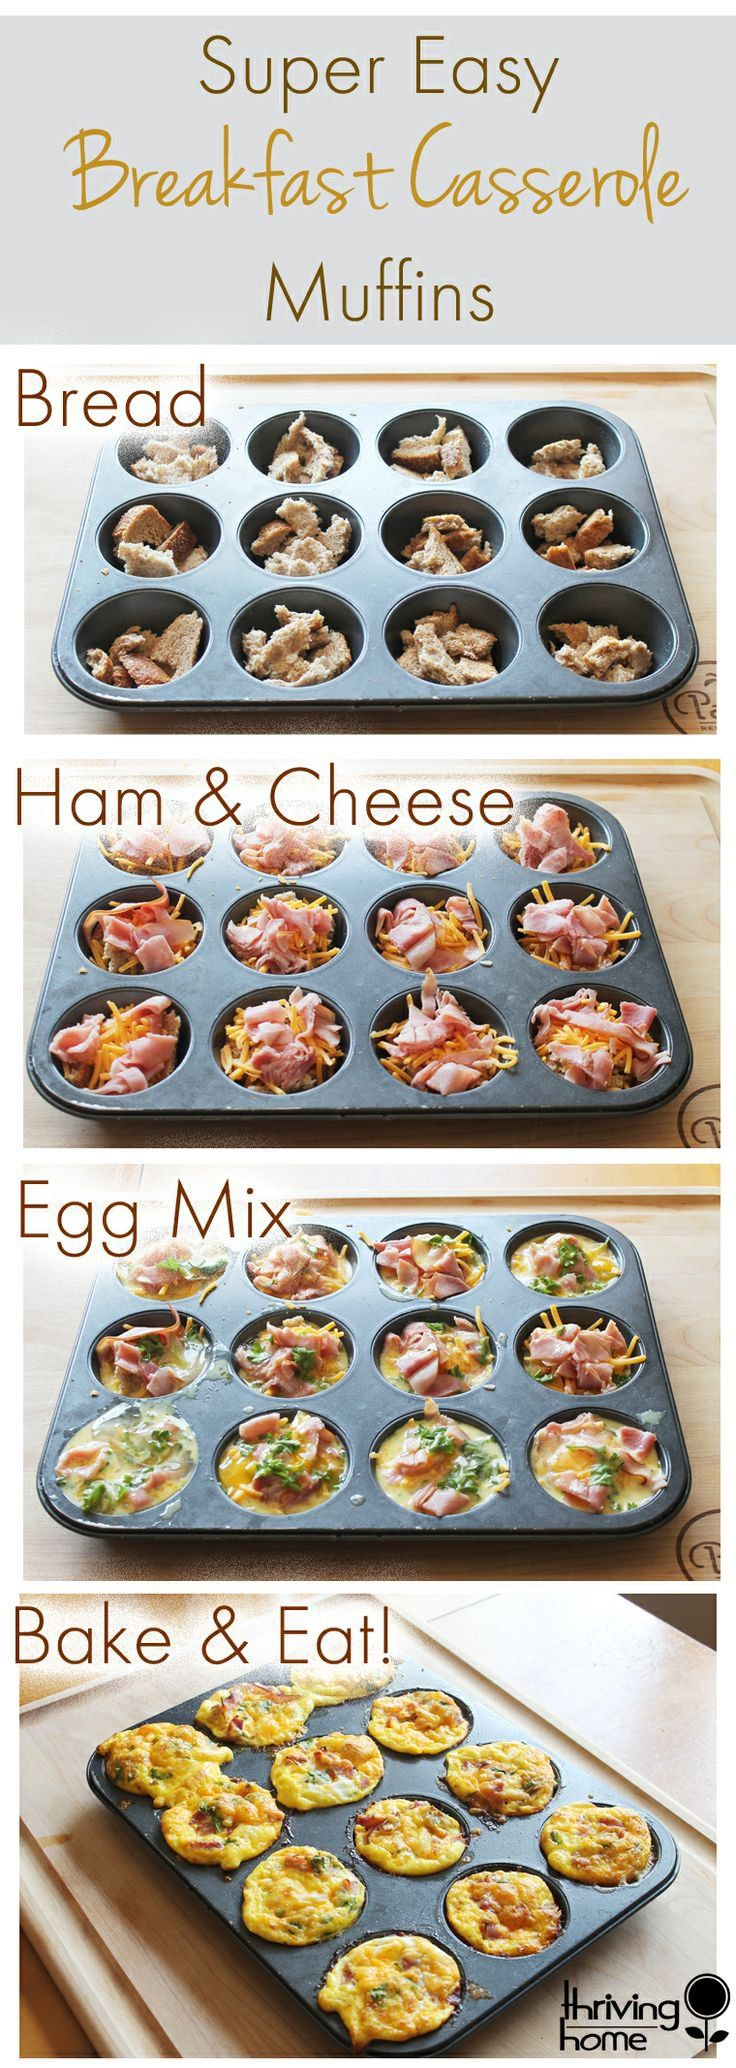 Ingredients:    2-3 pieces whole wheat bread (about 1 1/2 – 2 cups)   about 2 pieces deli ham (we use Dilusso because it's preservative-free)   1 cup